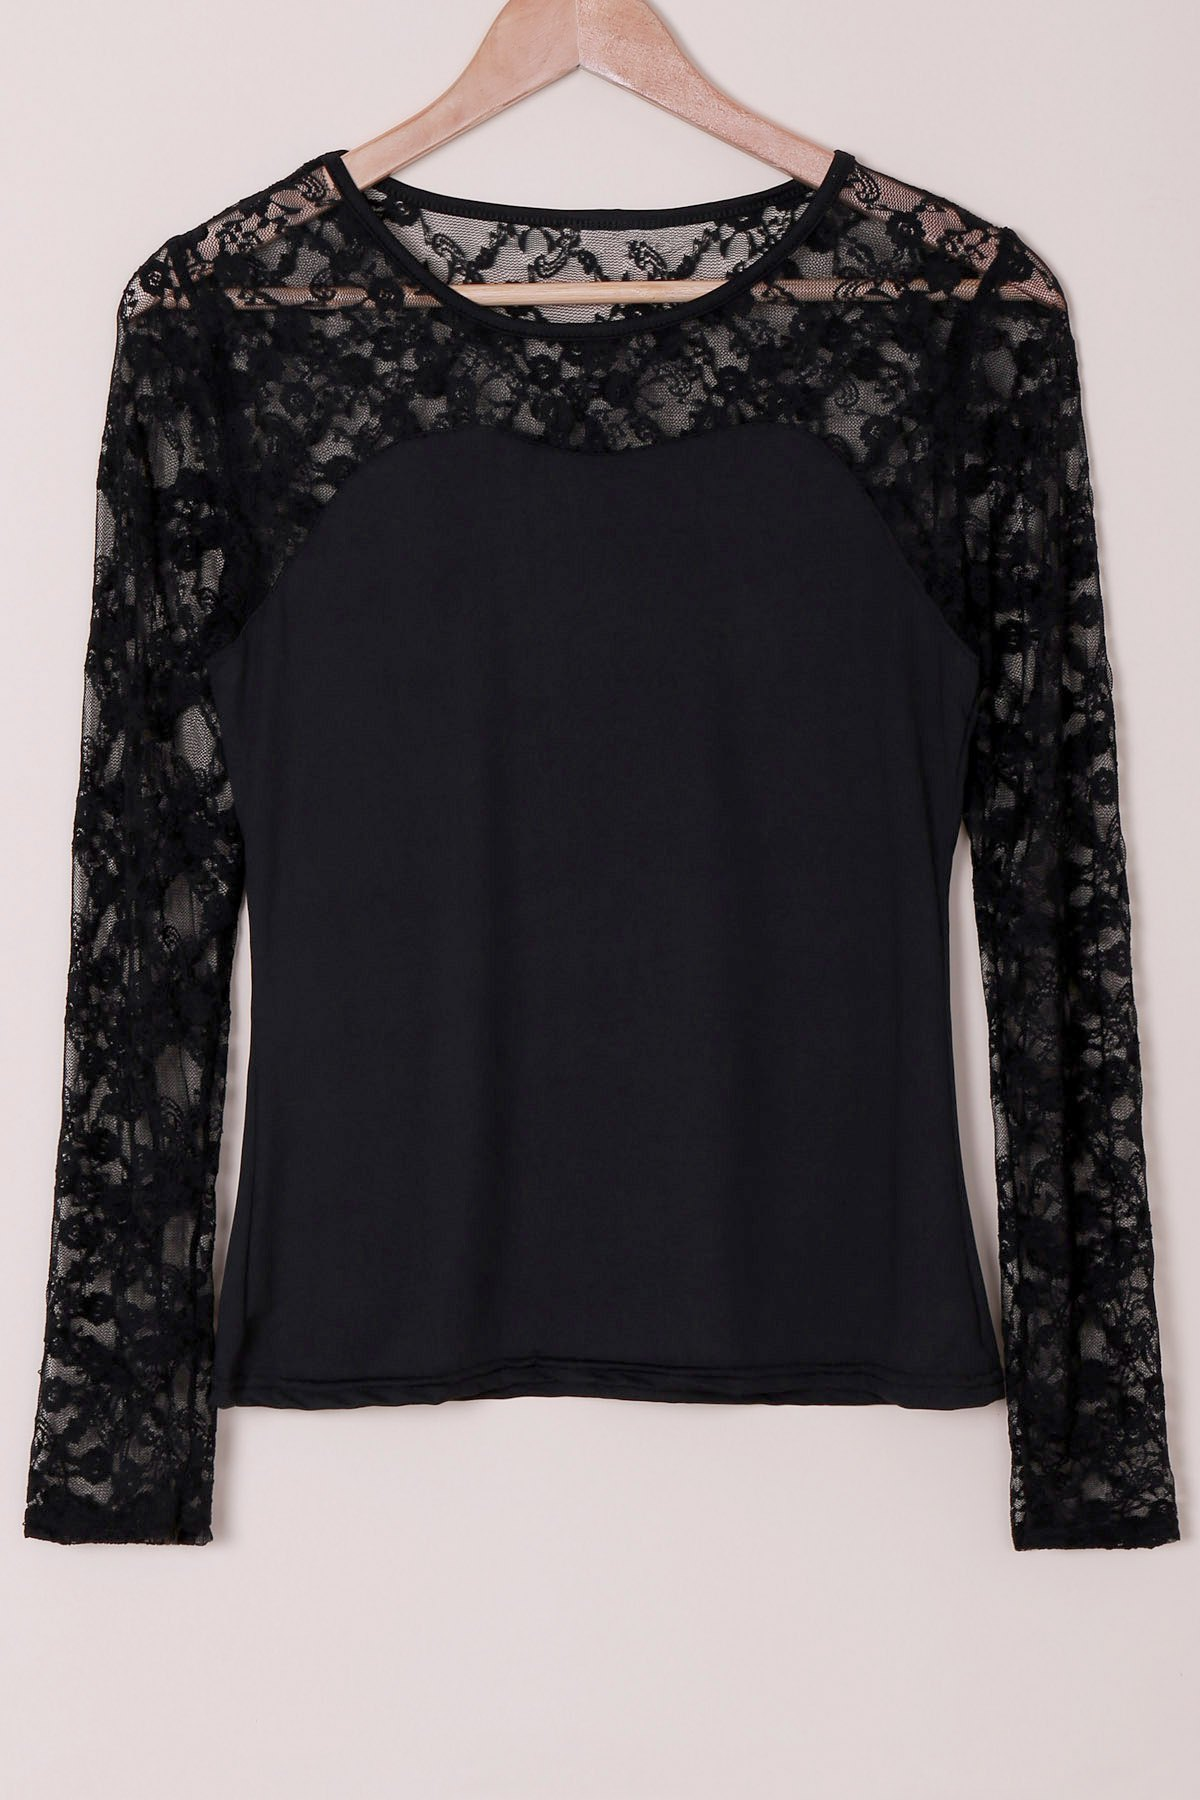 Casual Women's Scoop Neck Long Sleeves Lace Splicing T-Shirt - BLACK L